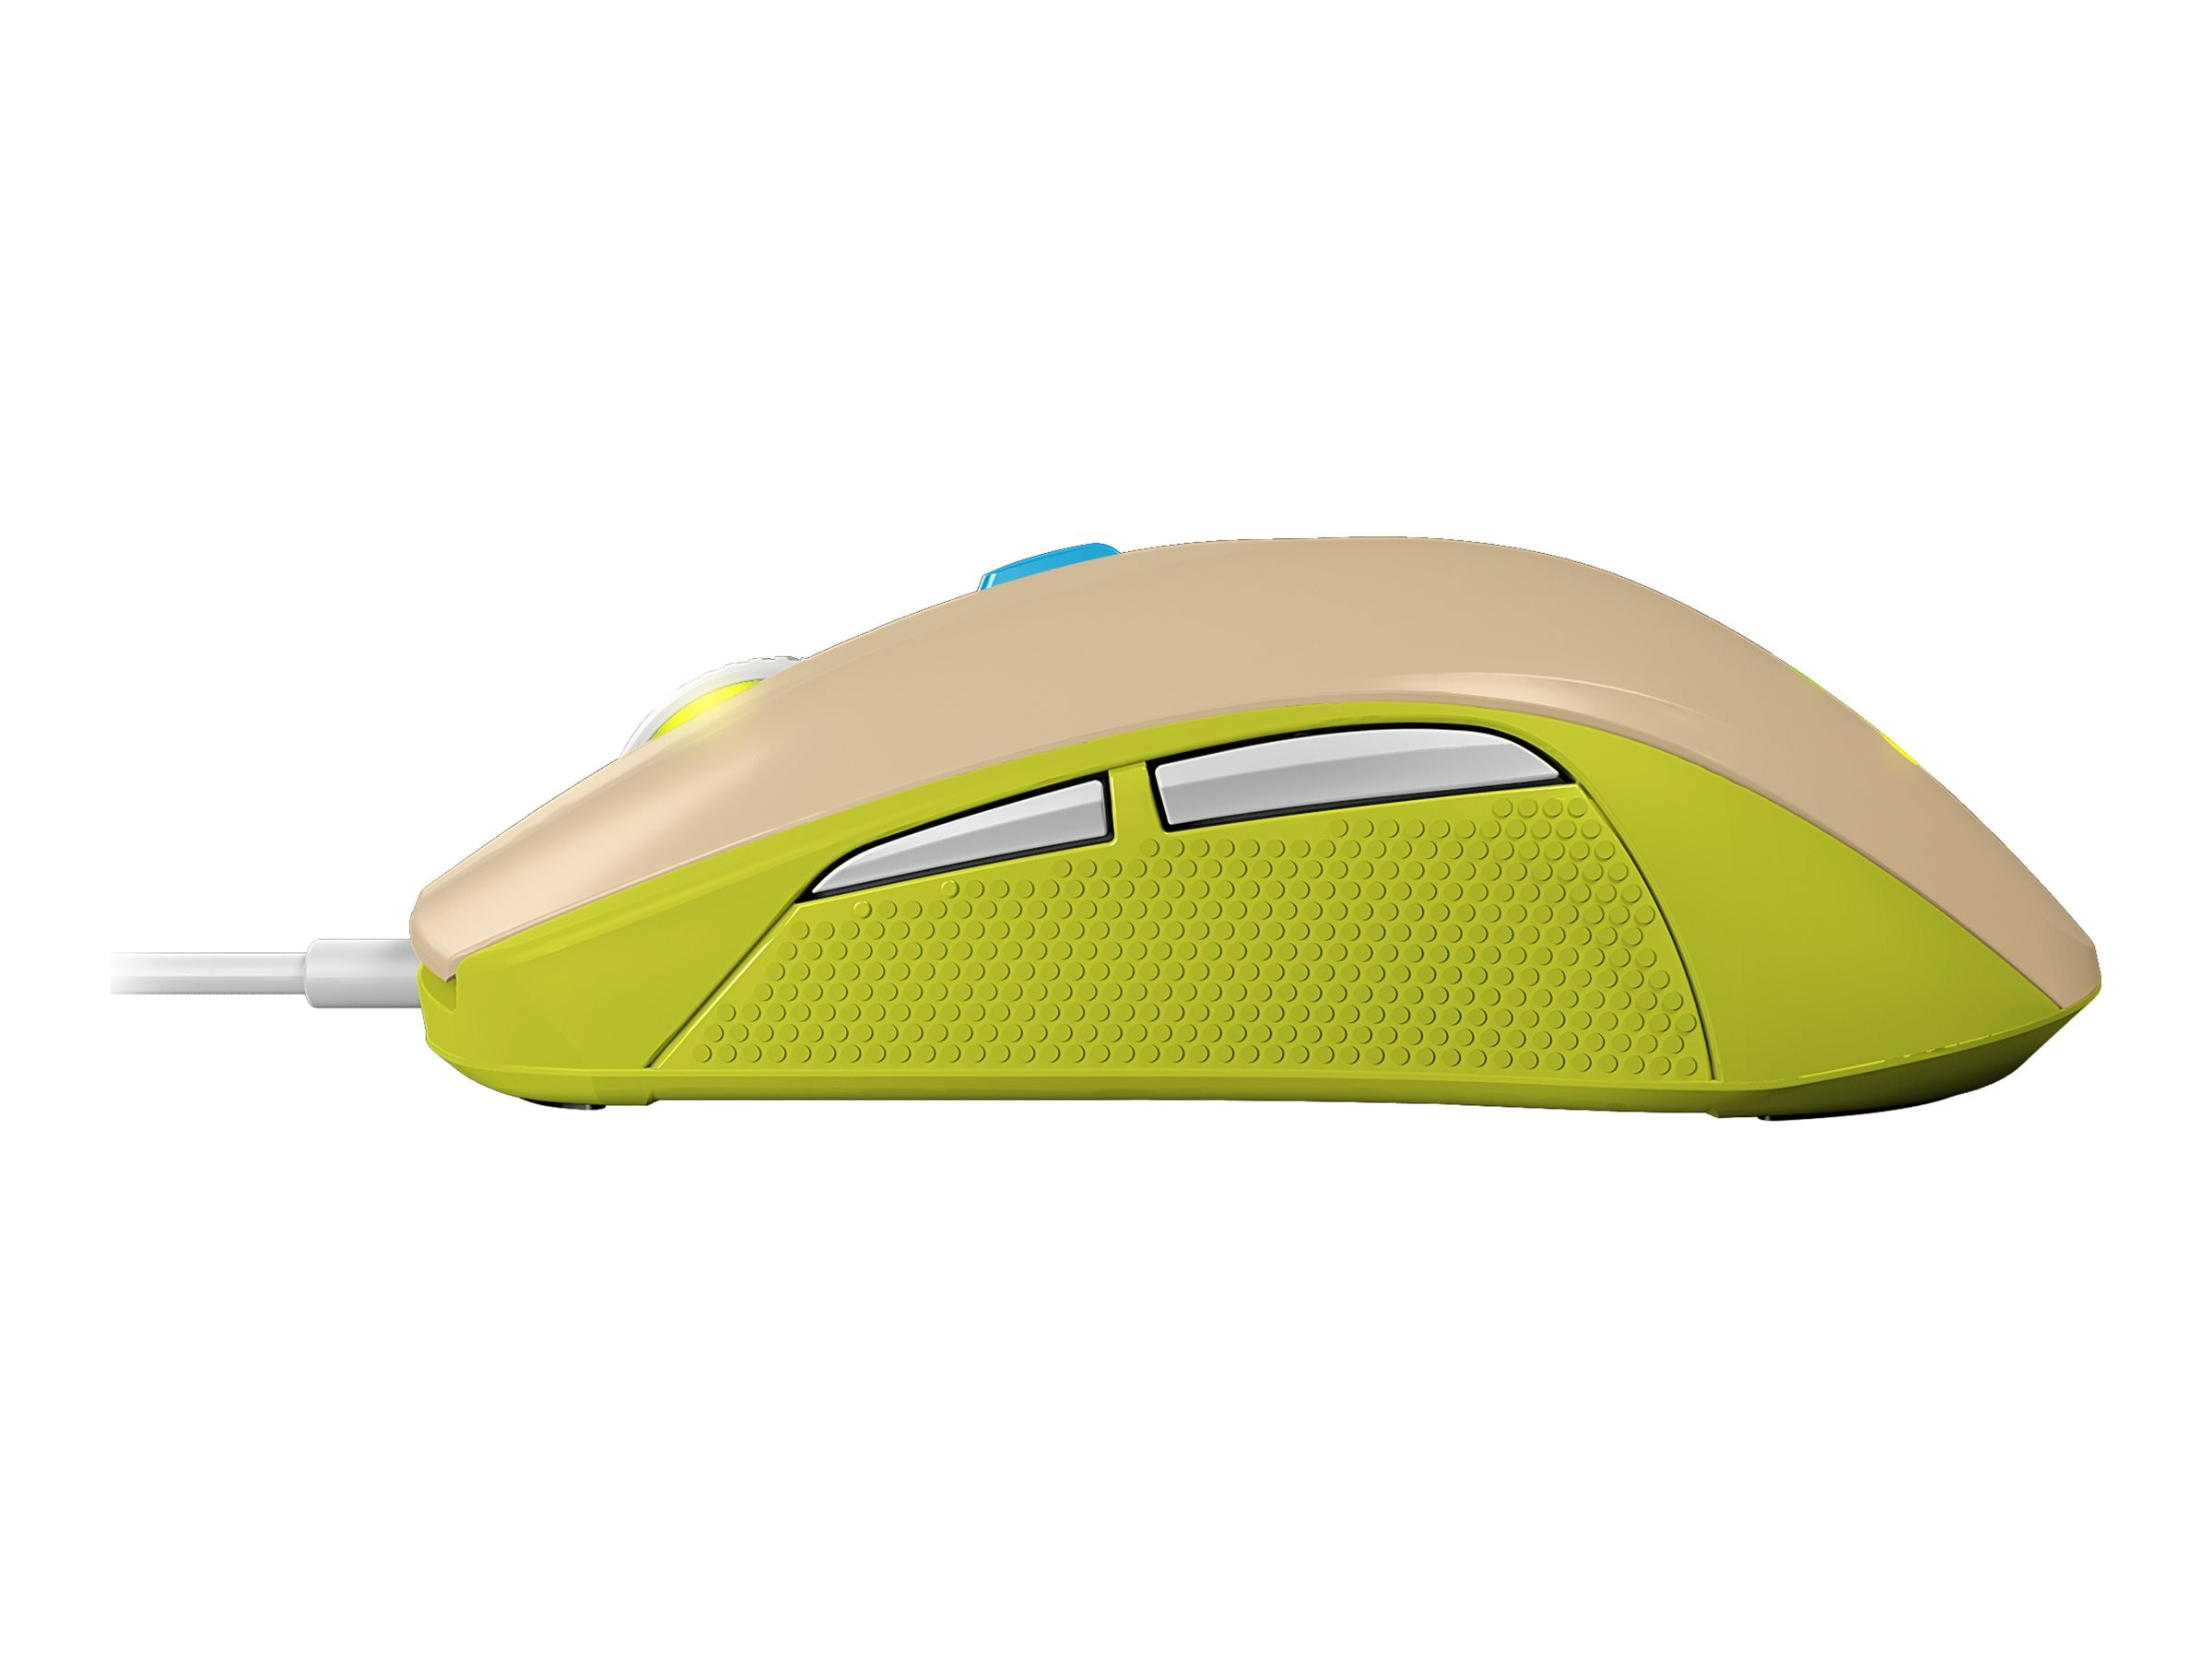 Steelseries Rival 100 Mouse, Gaia Green, 62339